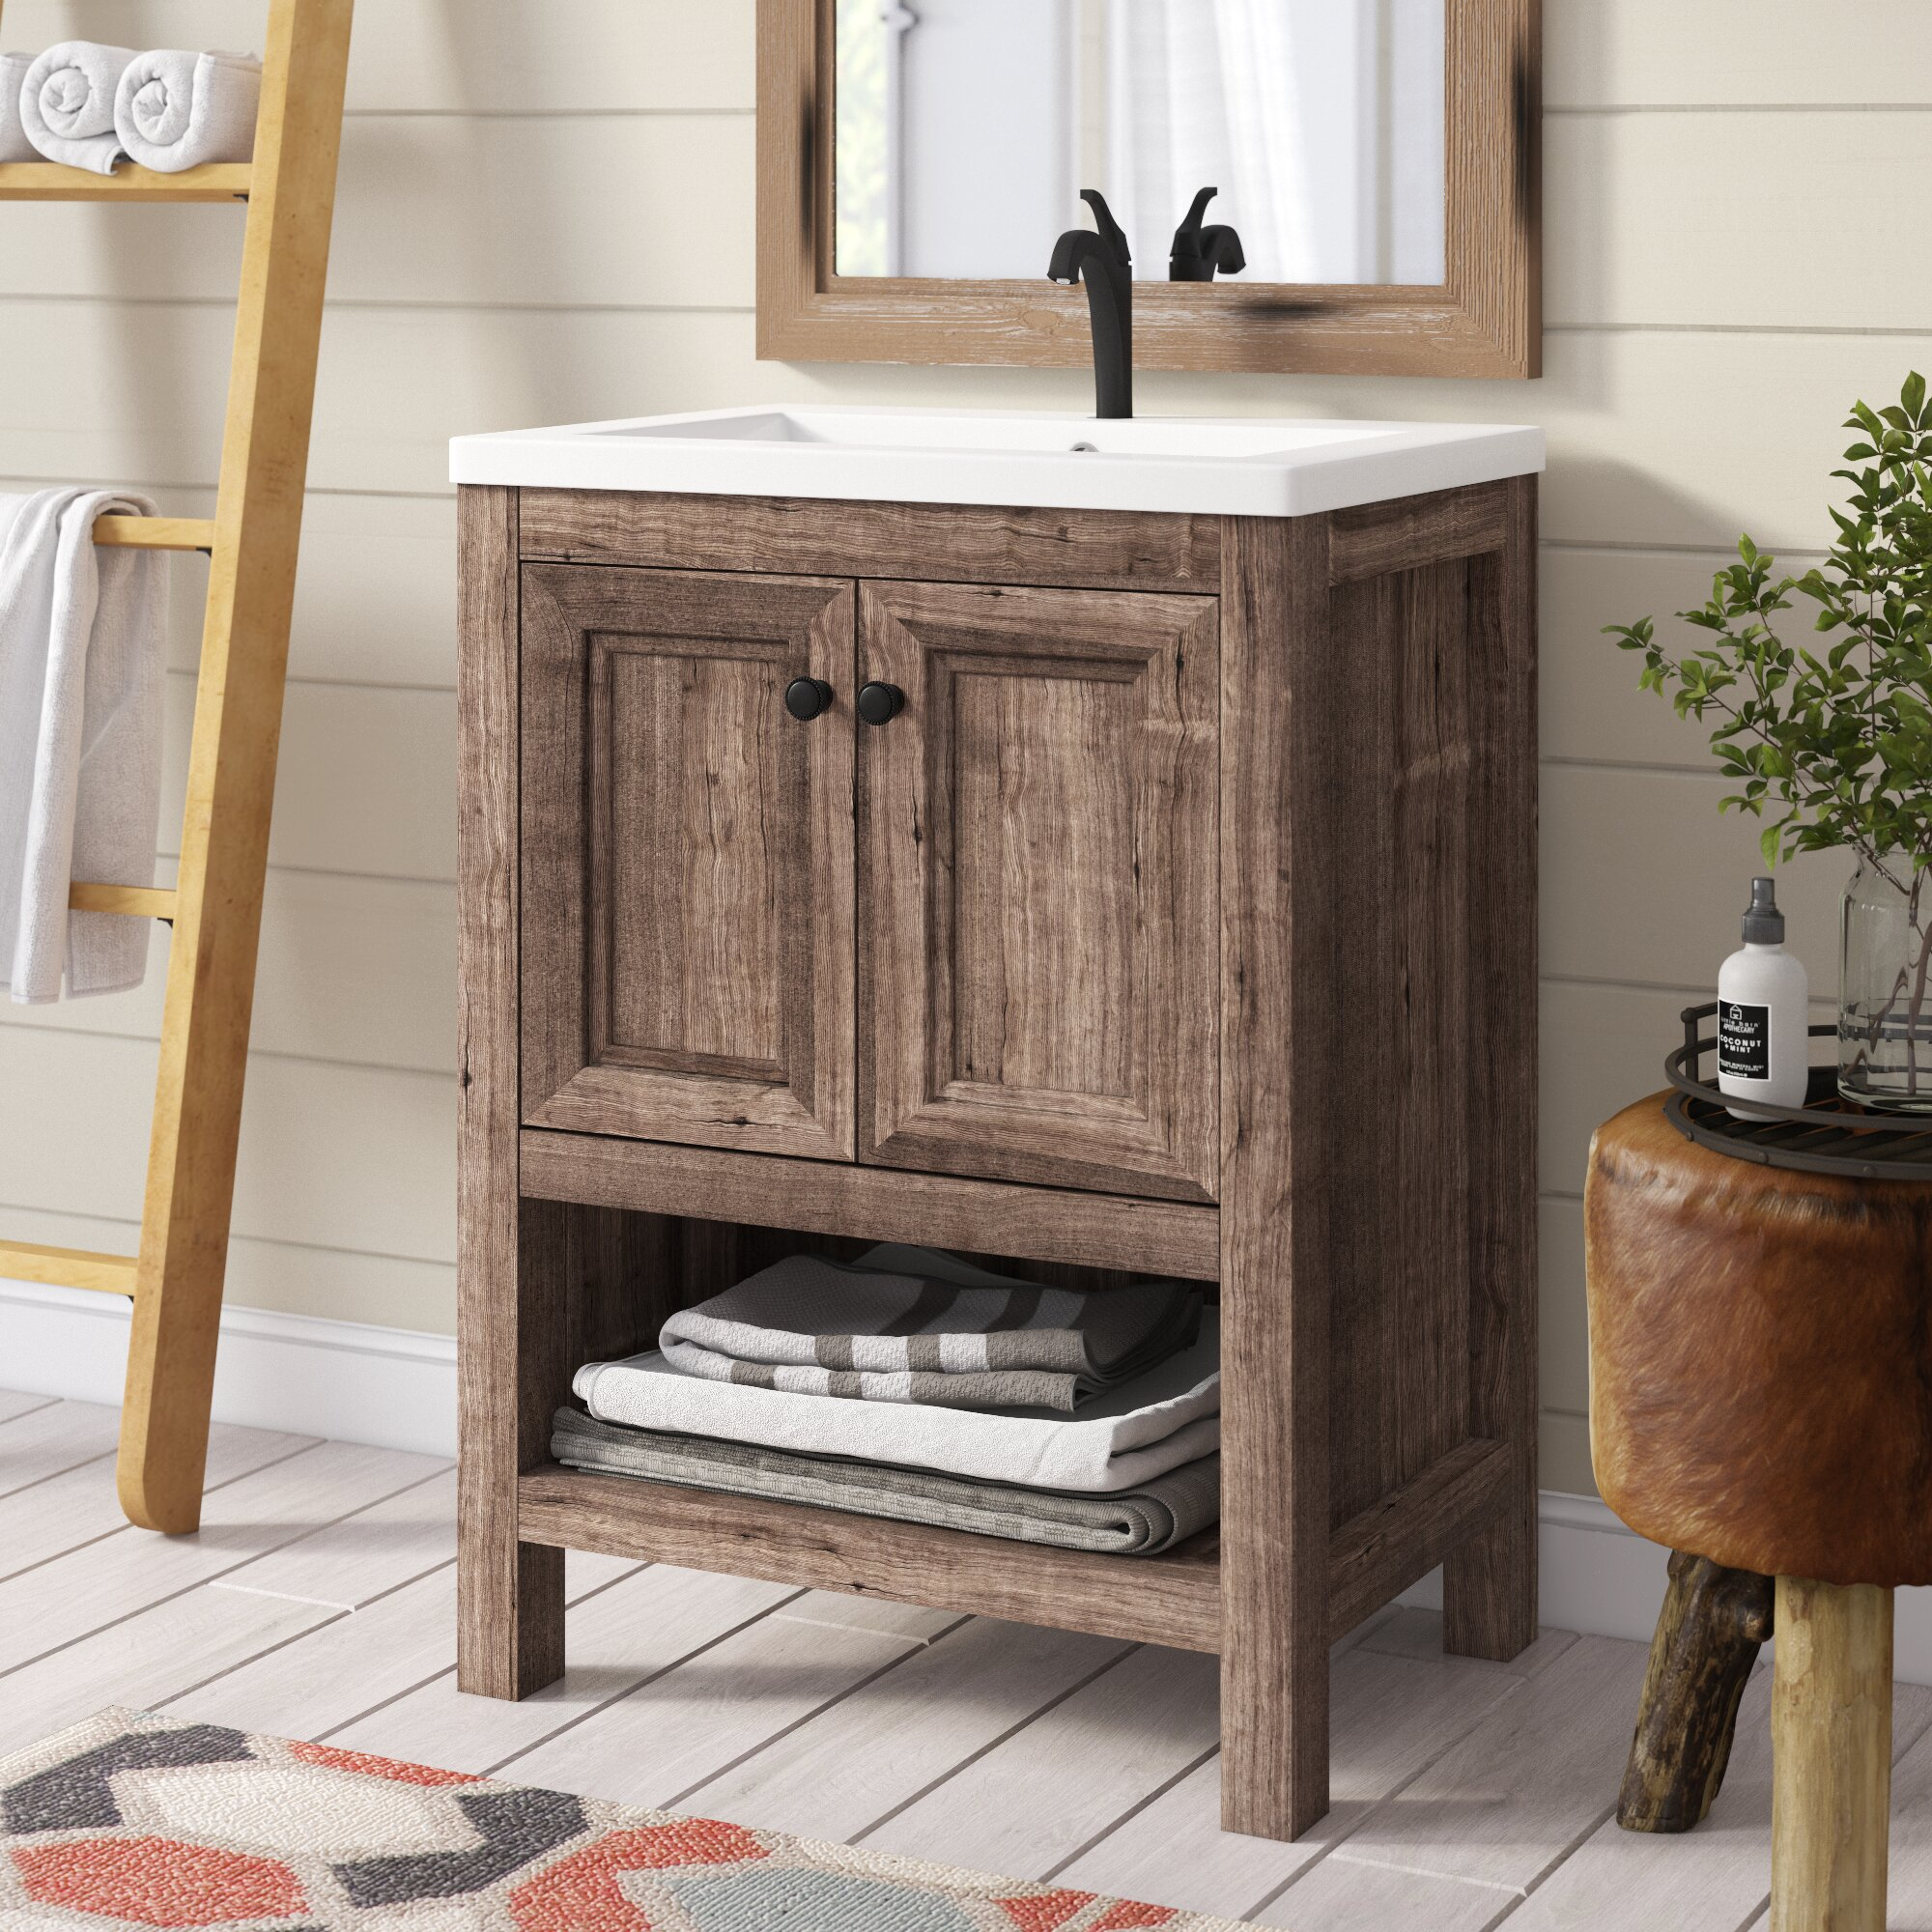 Union Rustic Nicholle 24 Single Bathroom Vanity Set Reviews Wayfair